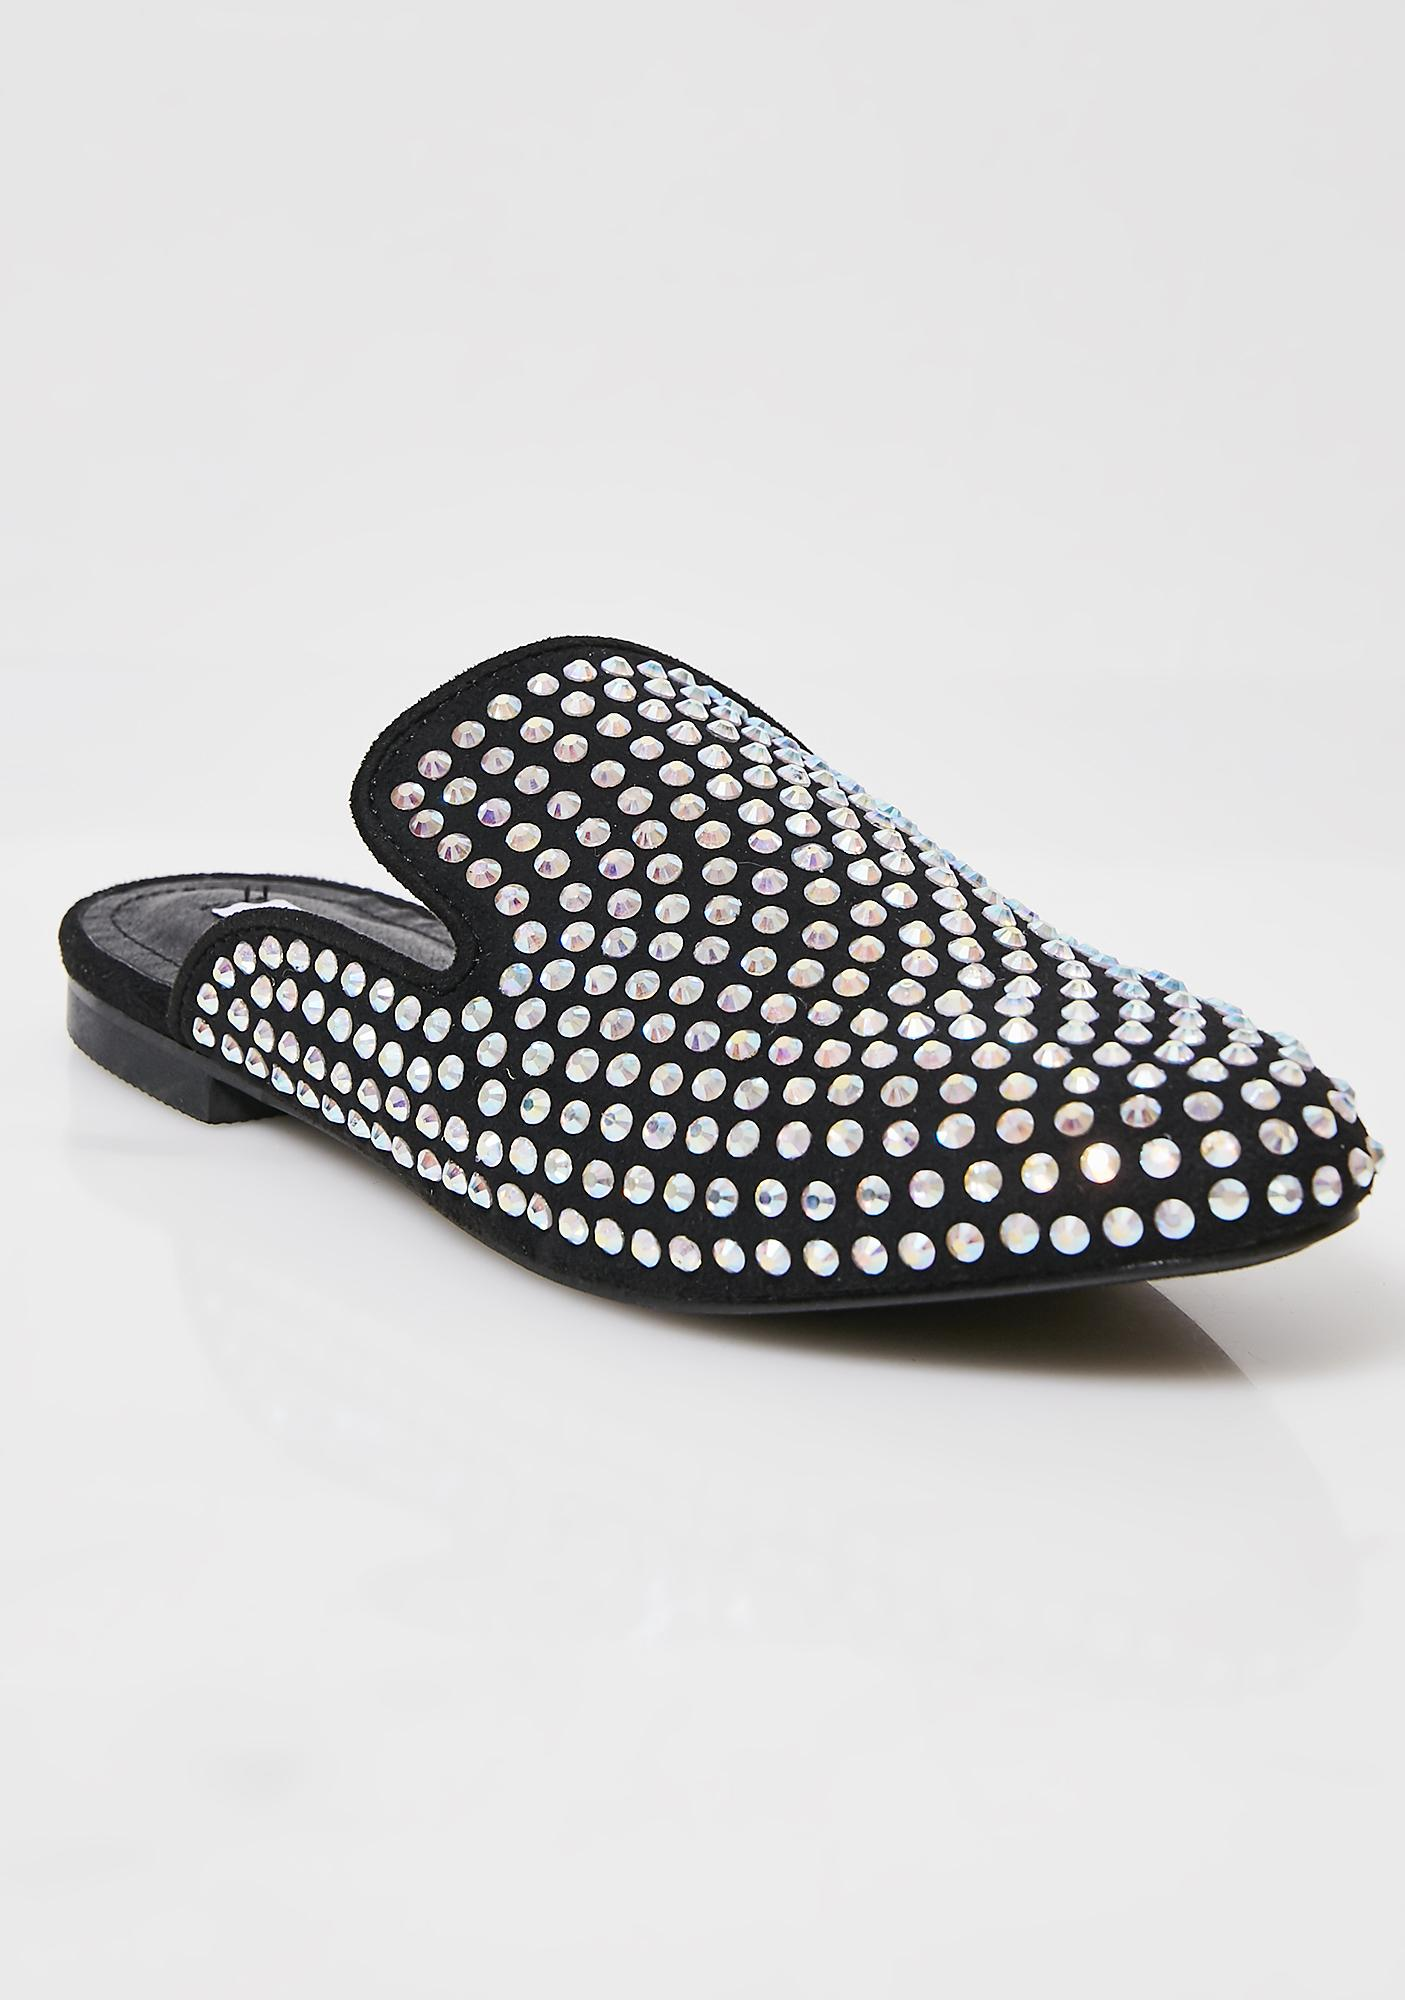 Change Of Pace Rhinestone Mules